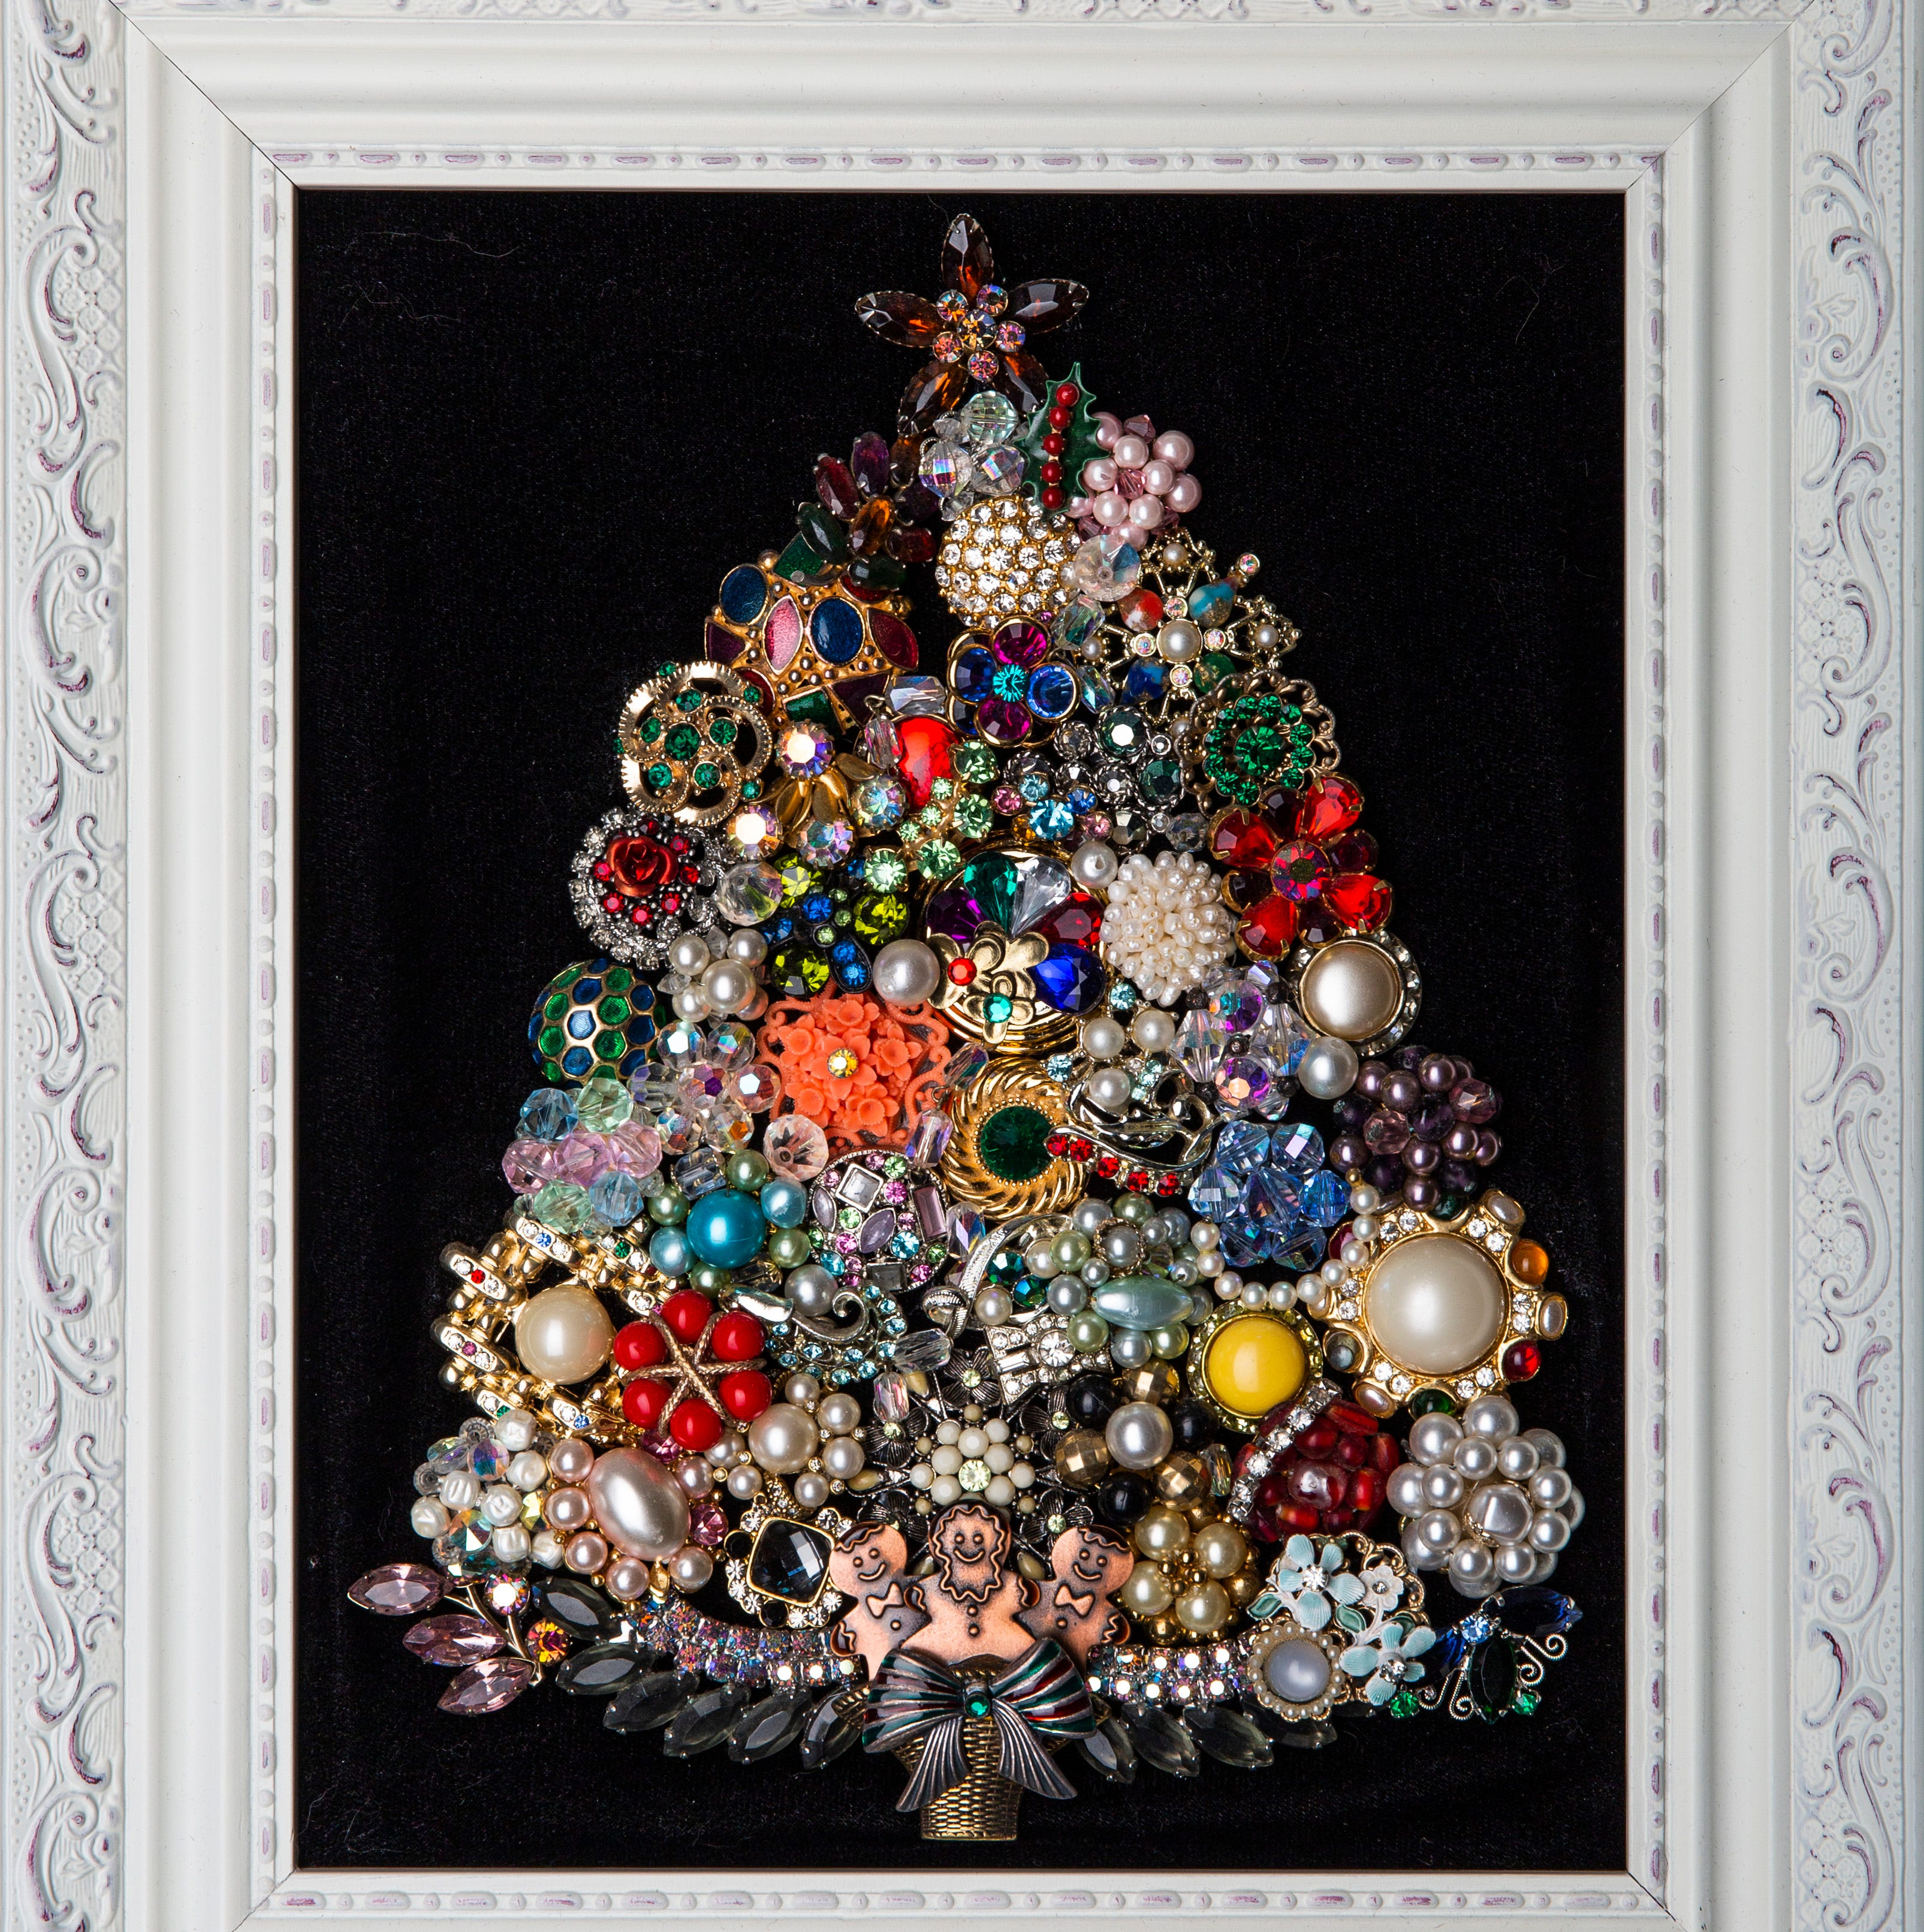 Get Organized: Up-cycle old treasures into holiday decorations